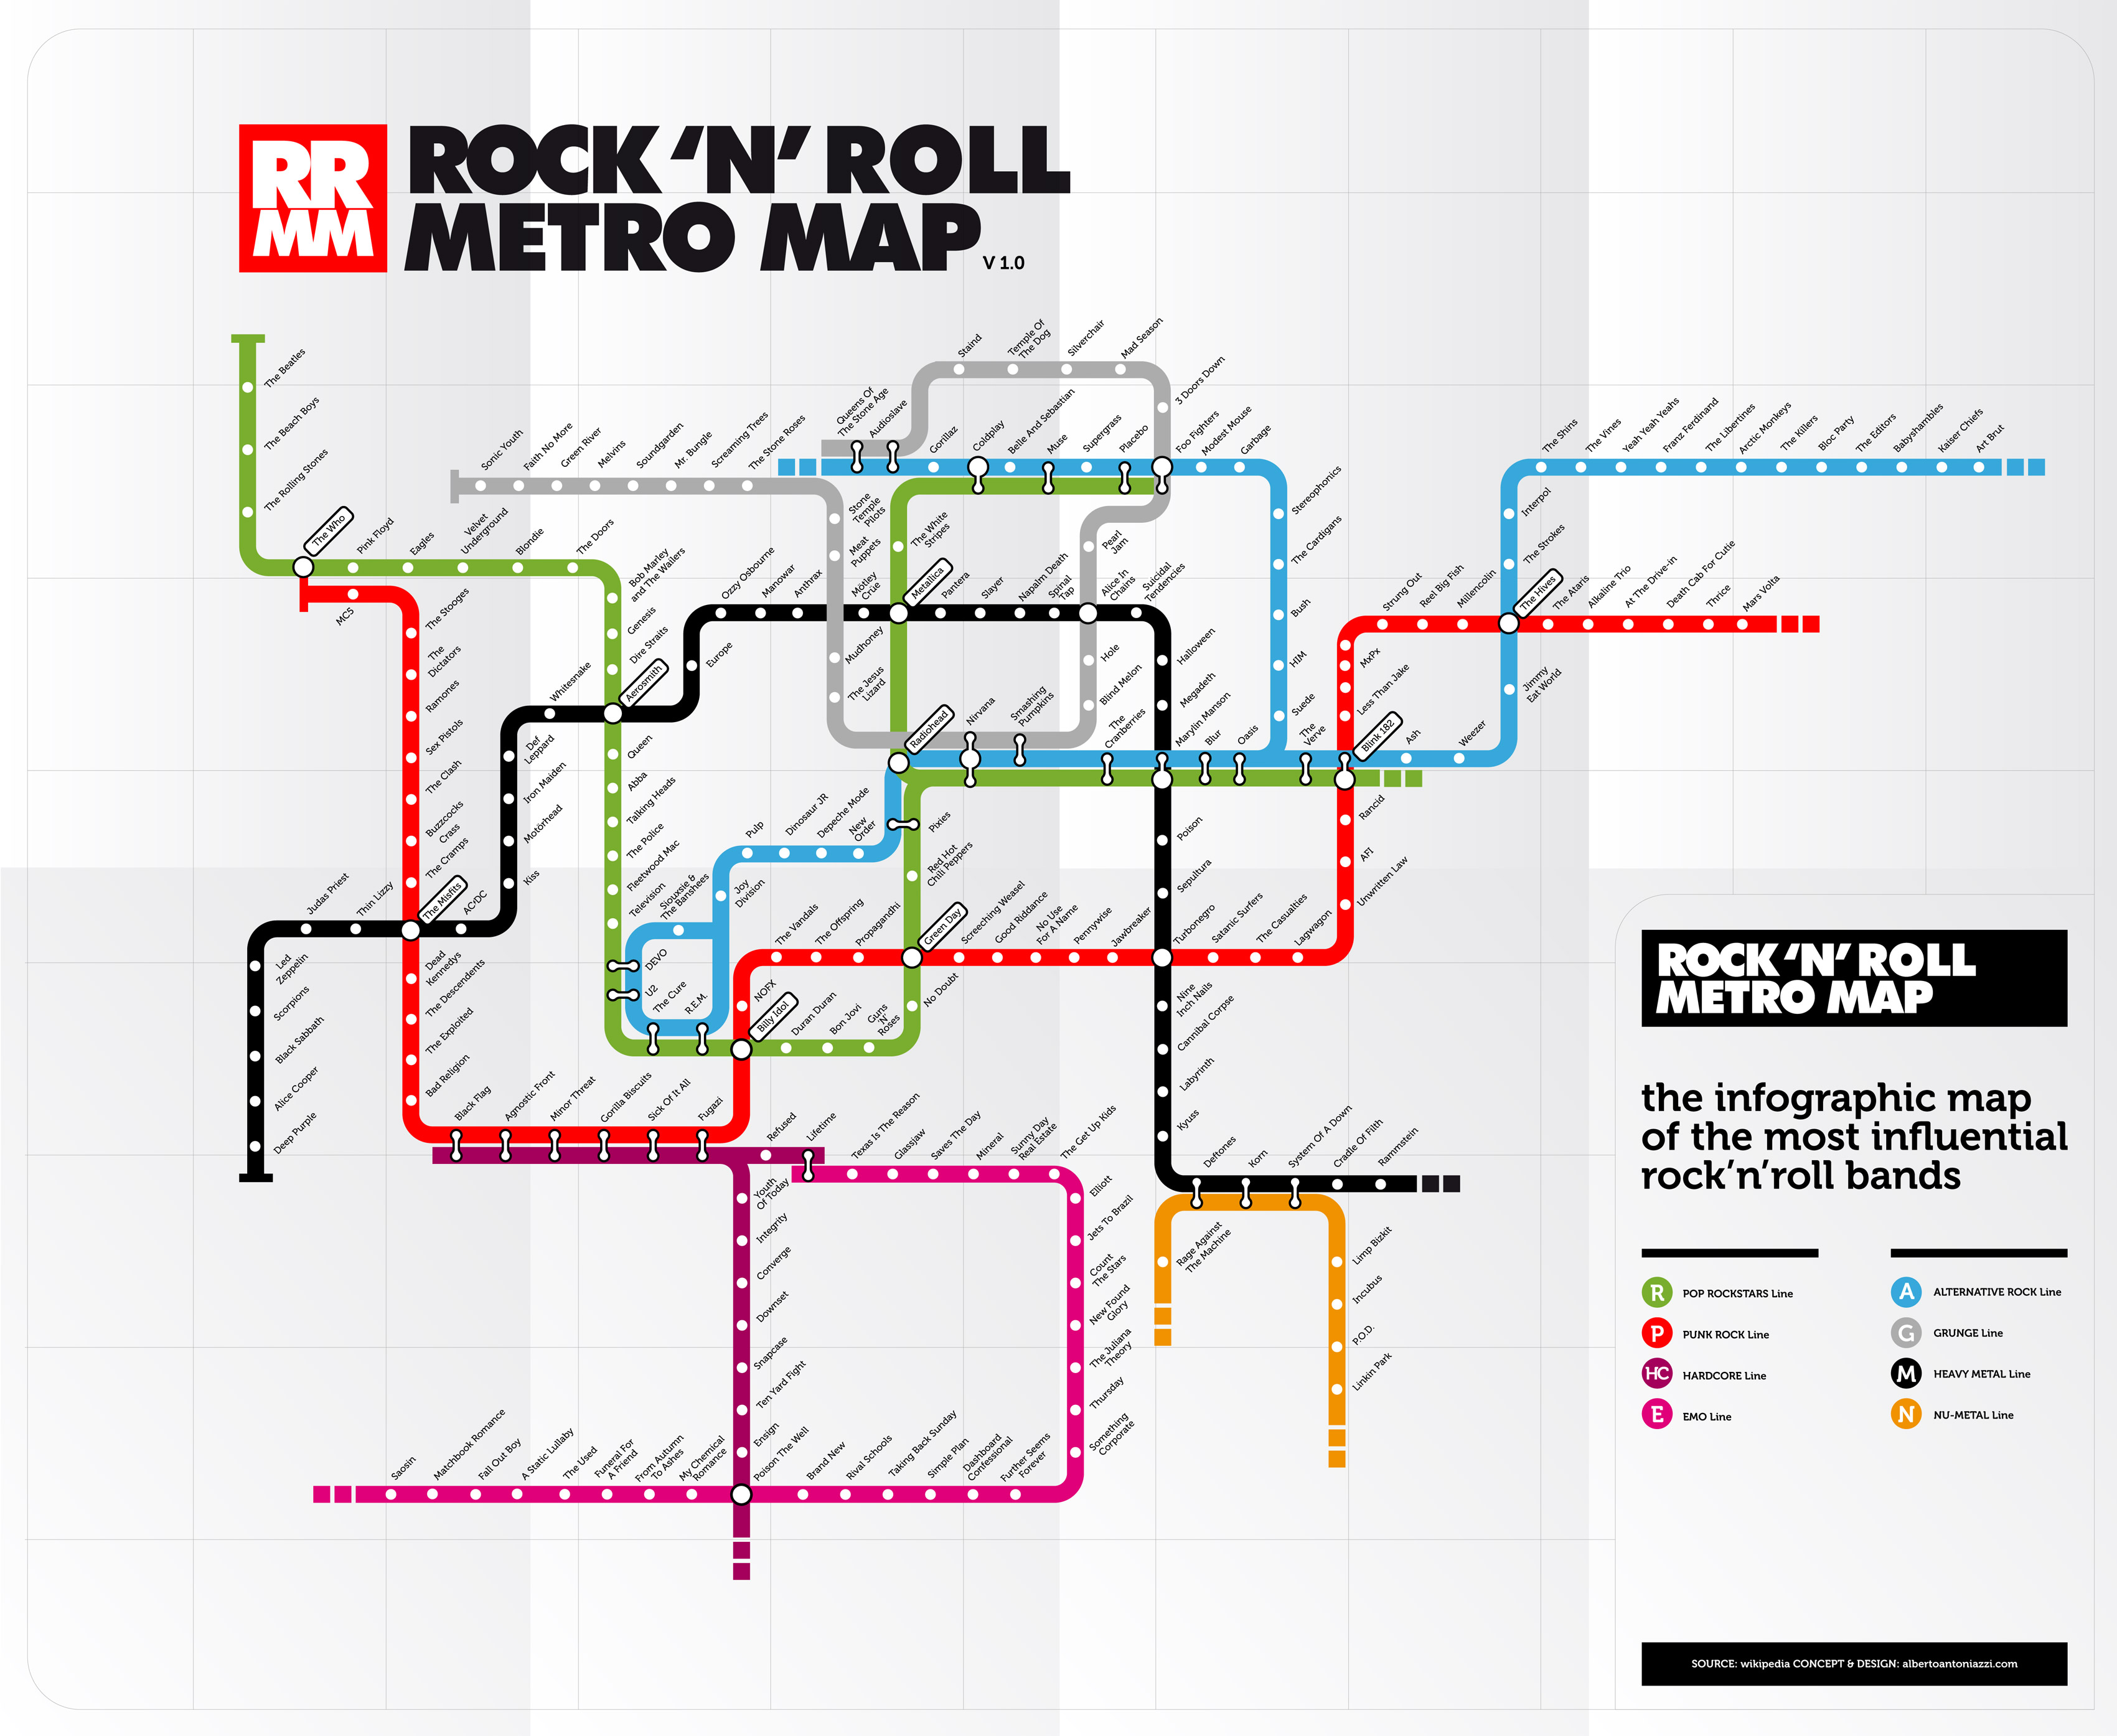 Custom Subway Map Creator.Attempts To Map Music Musings On Maps